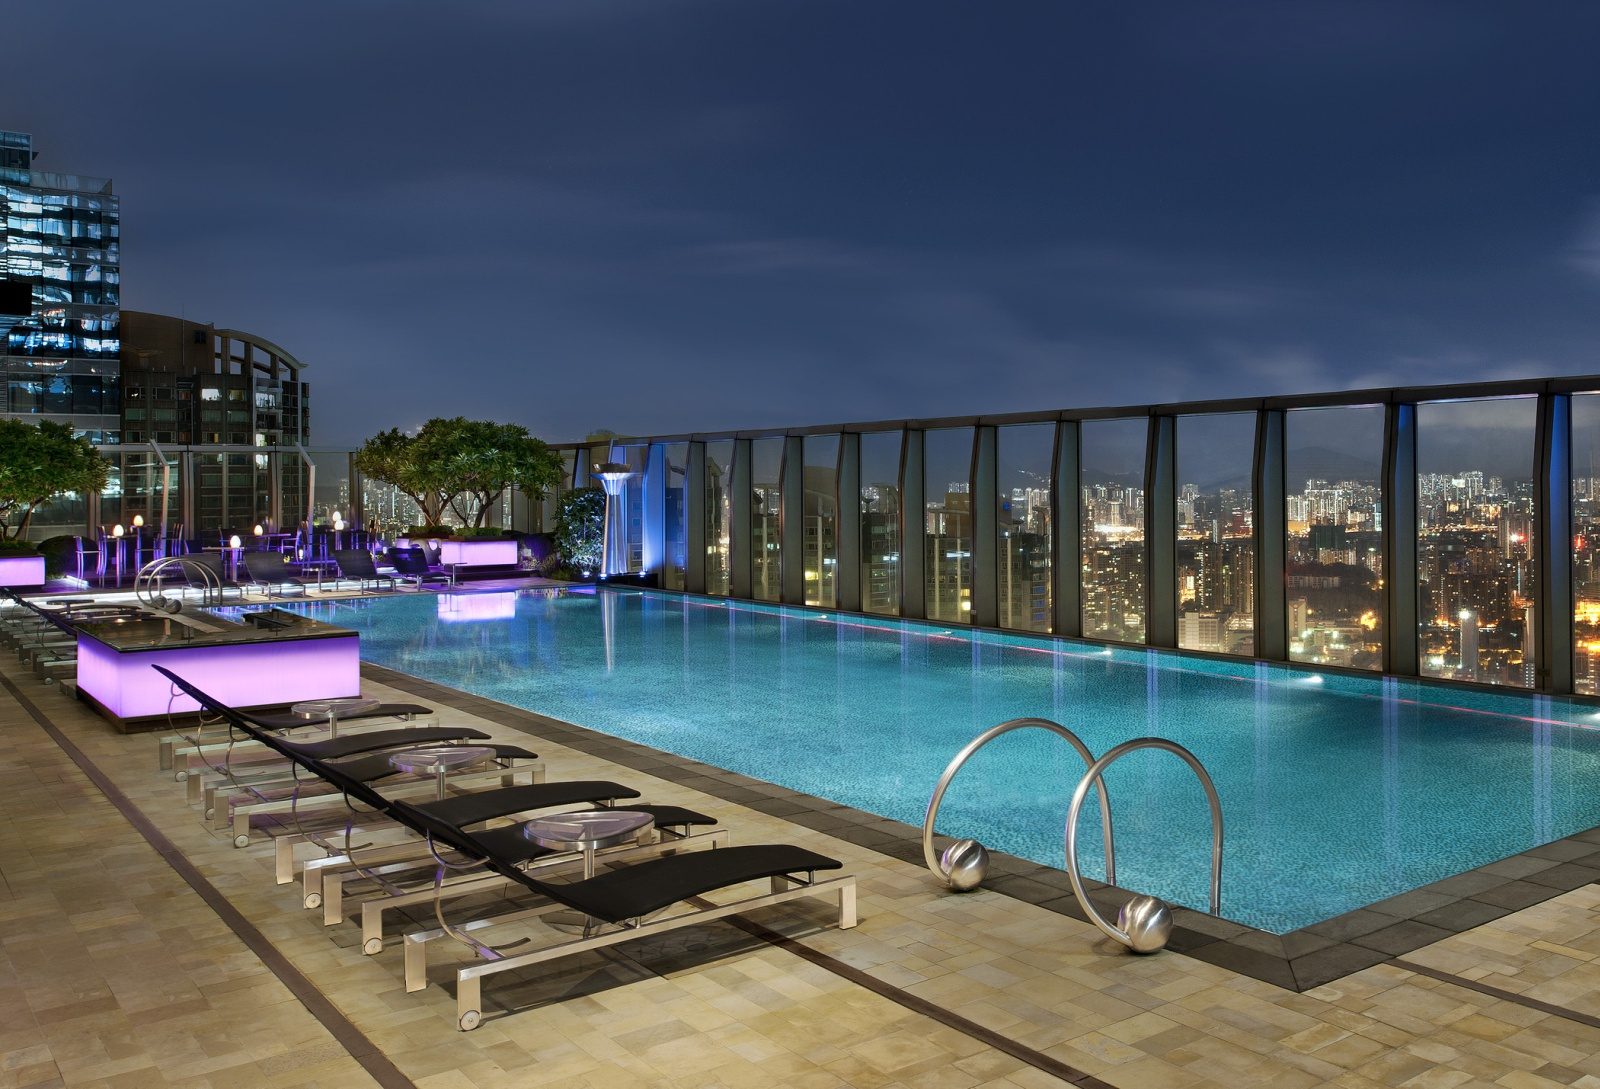 W hotel hong kong - North east hotels with swimming pool ...